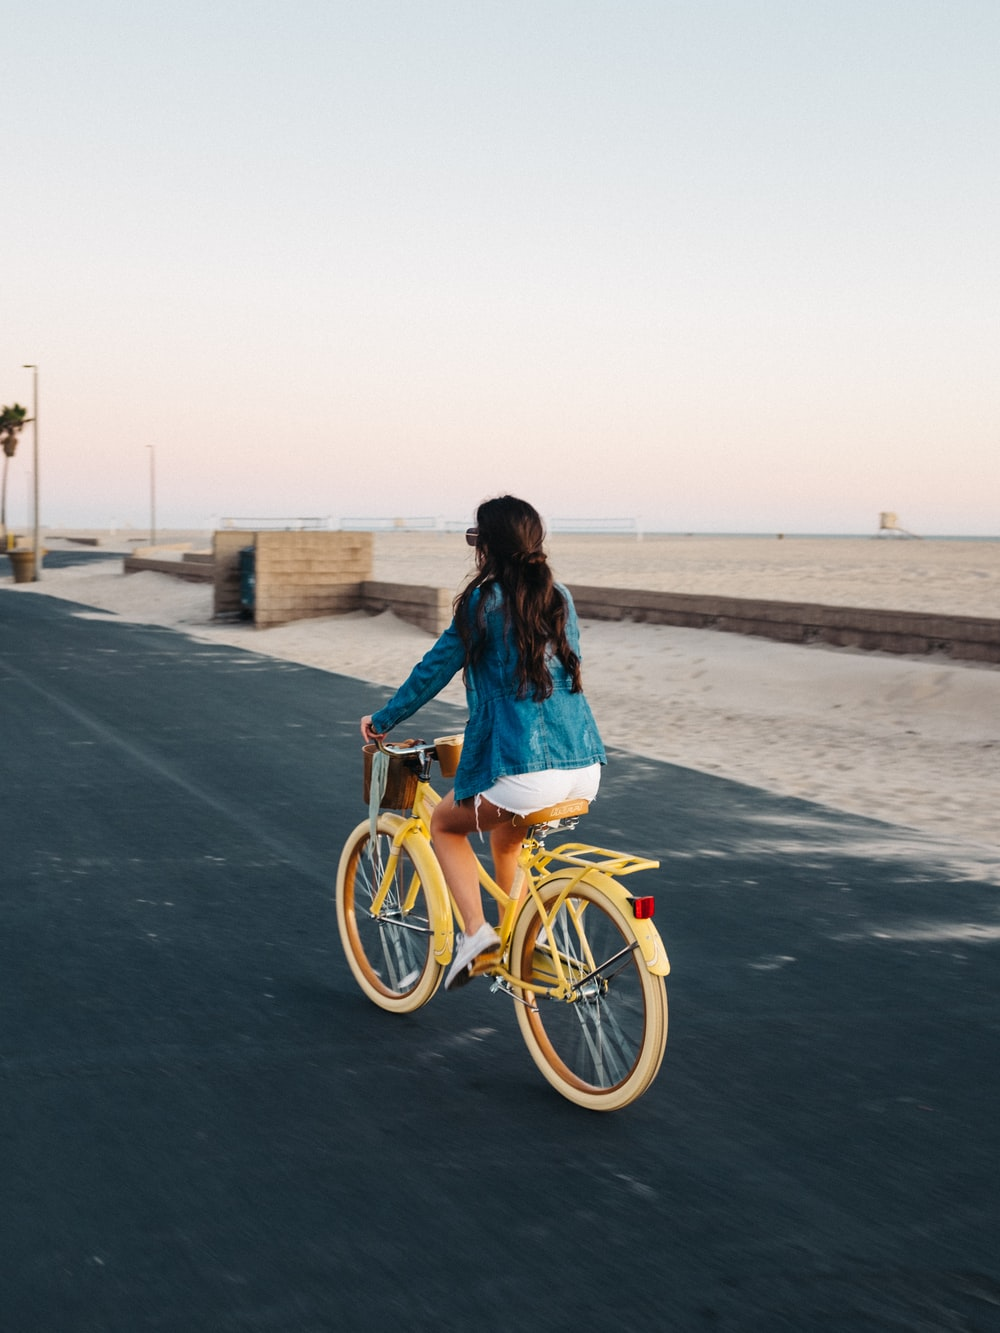 woman riding on yellow bicycle